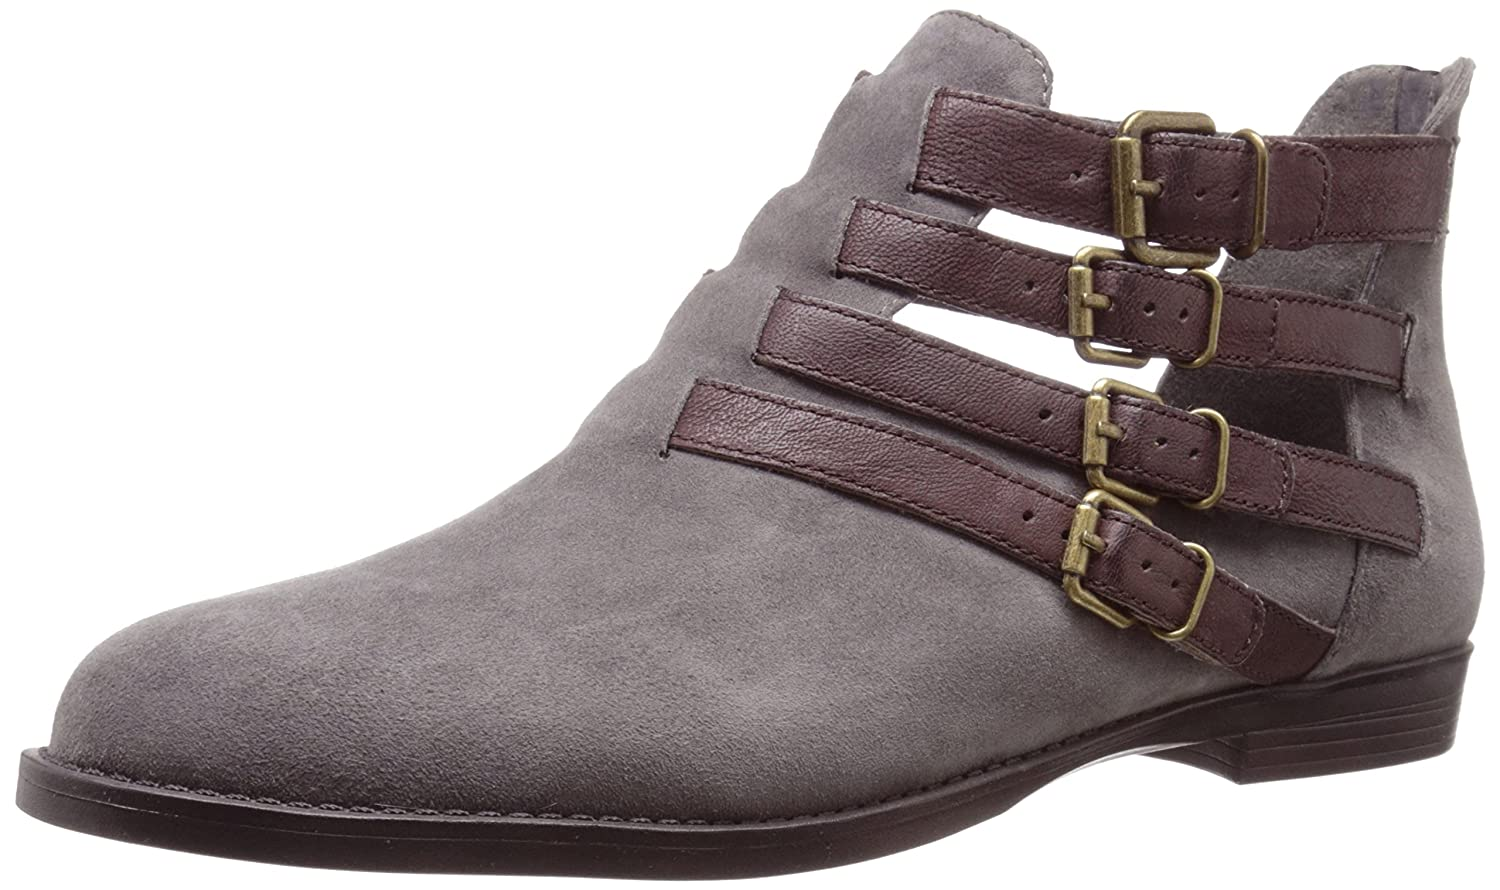 Bella Vita Women's Ronan Boot B00ZIE2Y3E 6 W US|Grey Suede/Chestnut